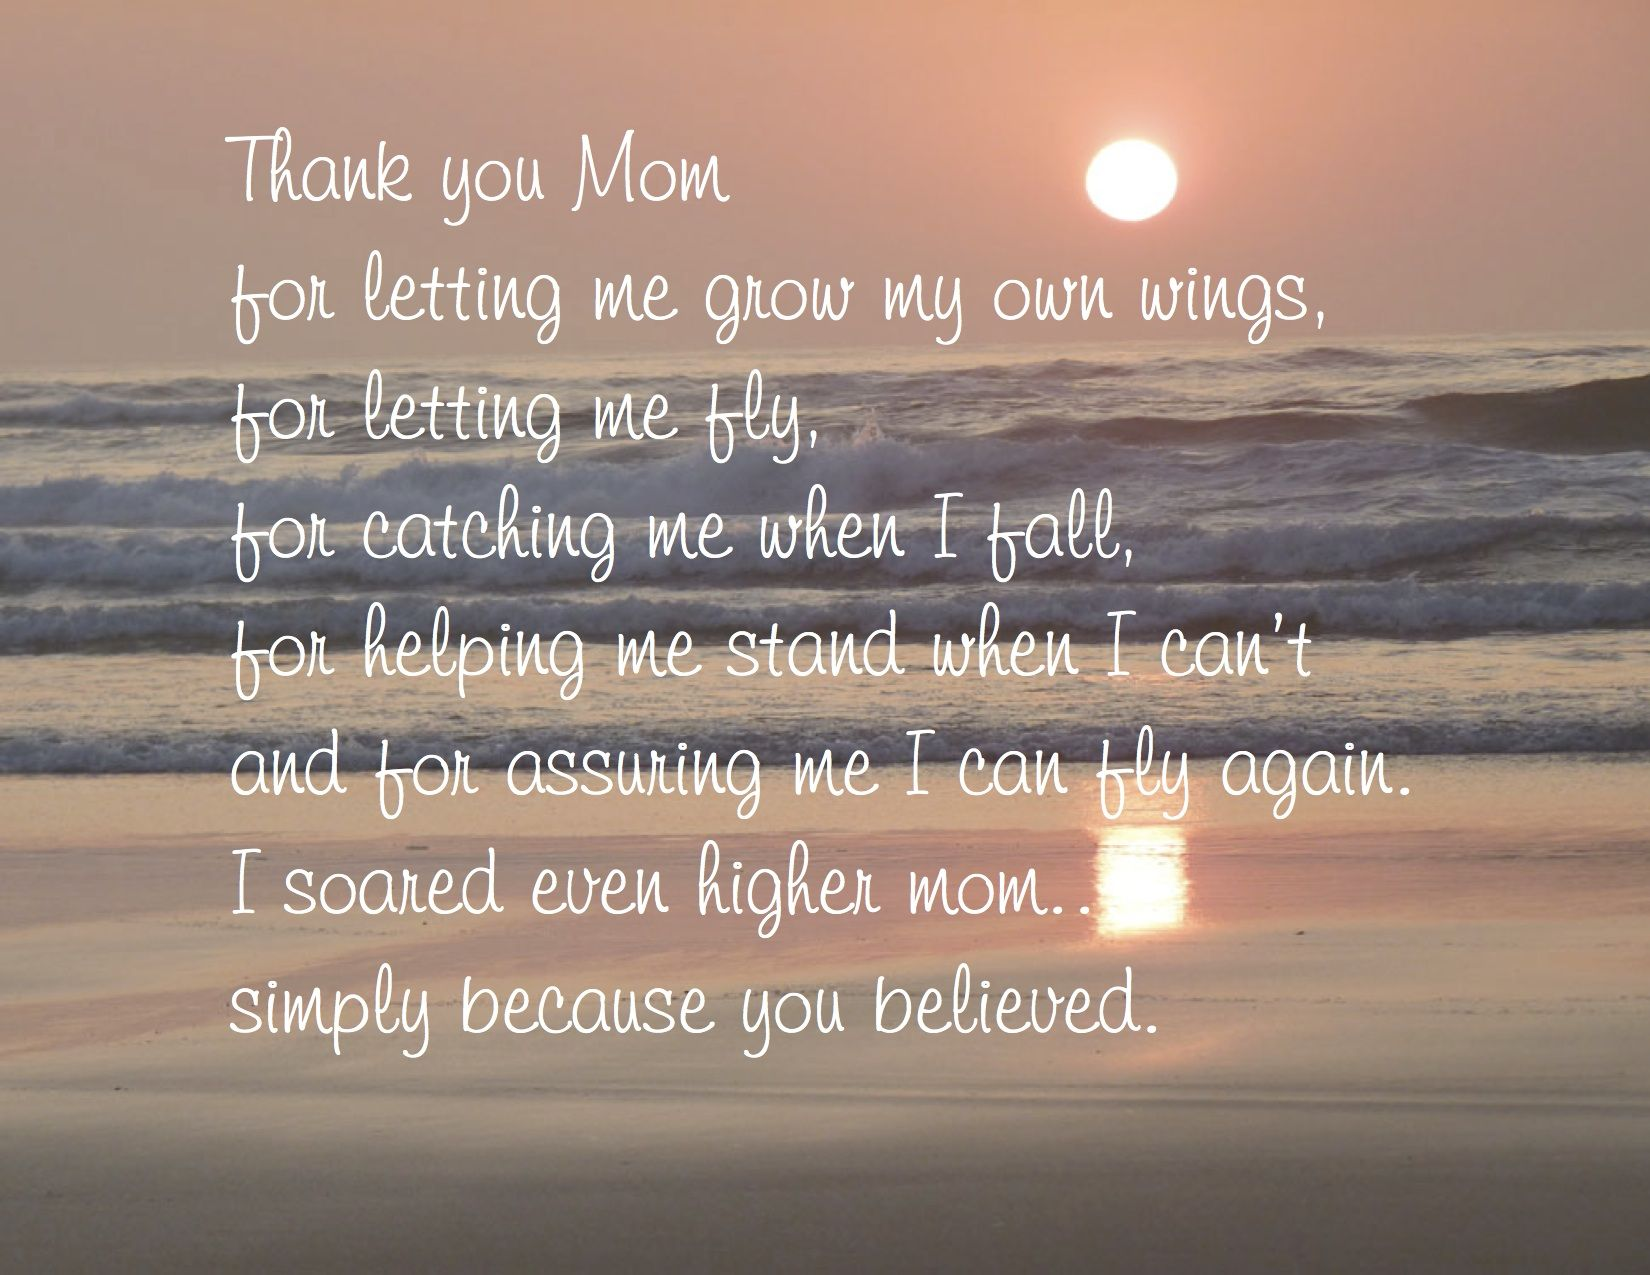 Thank You Mom! Quotes Pinterest Christian families